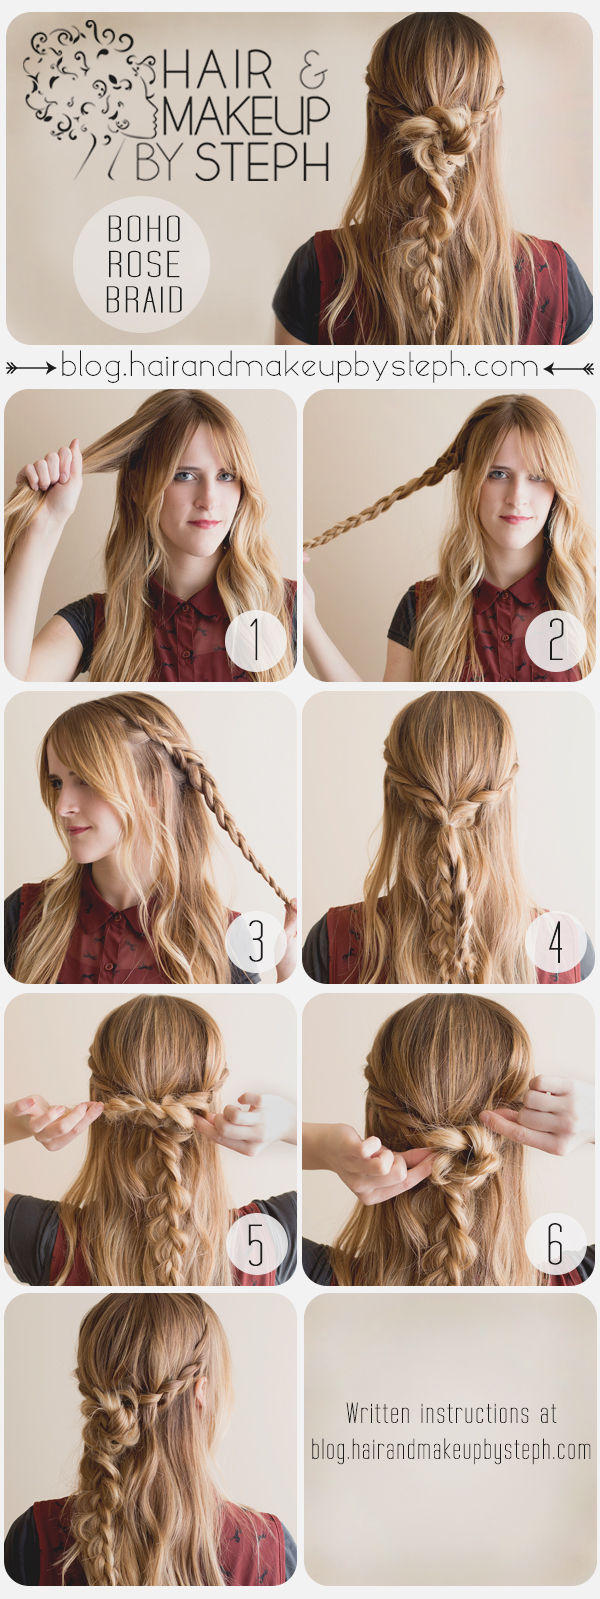 Peachy How To Do Boho Braid Hairstyles Braids Short Hairstyles Gunalazisus